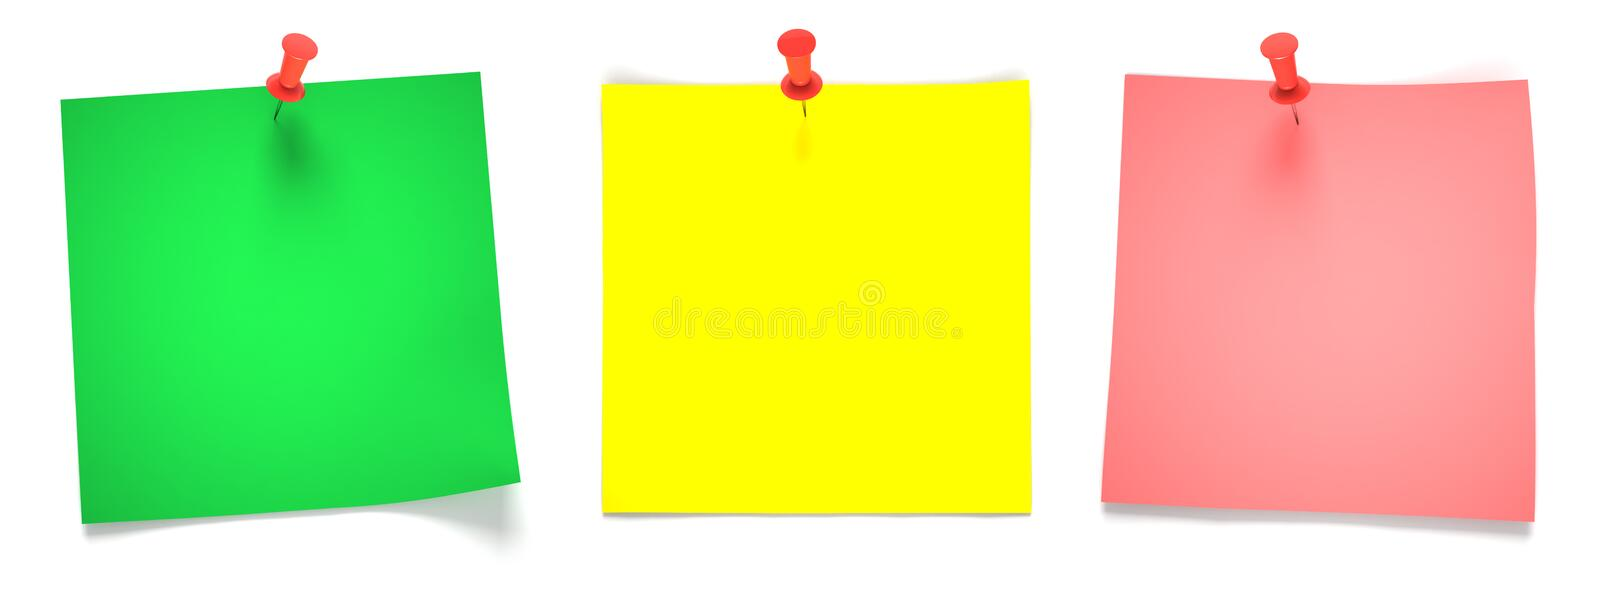 Download Green, Yellow, Pink Papers Royalty Free Stock Image - Image: 18812386